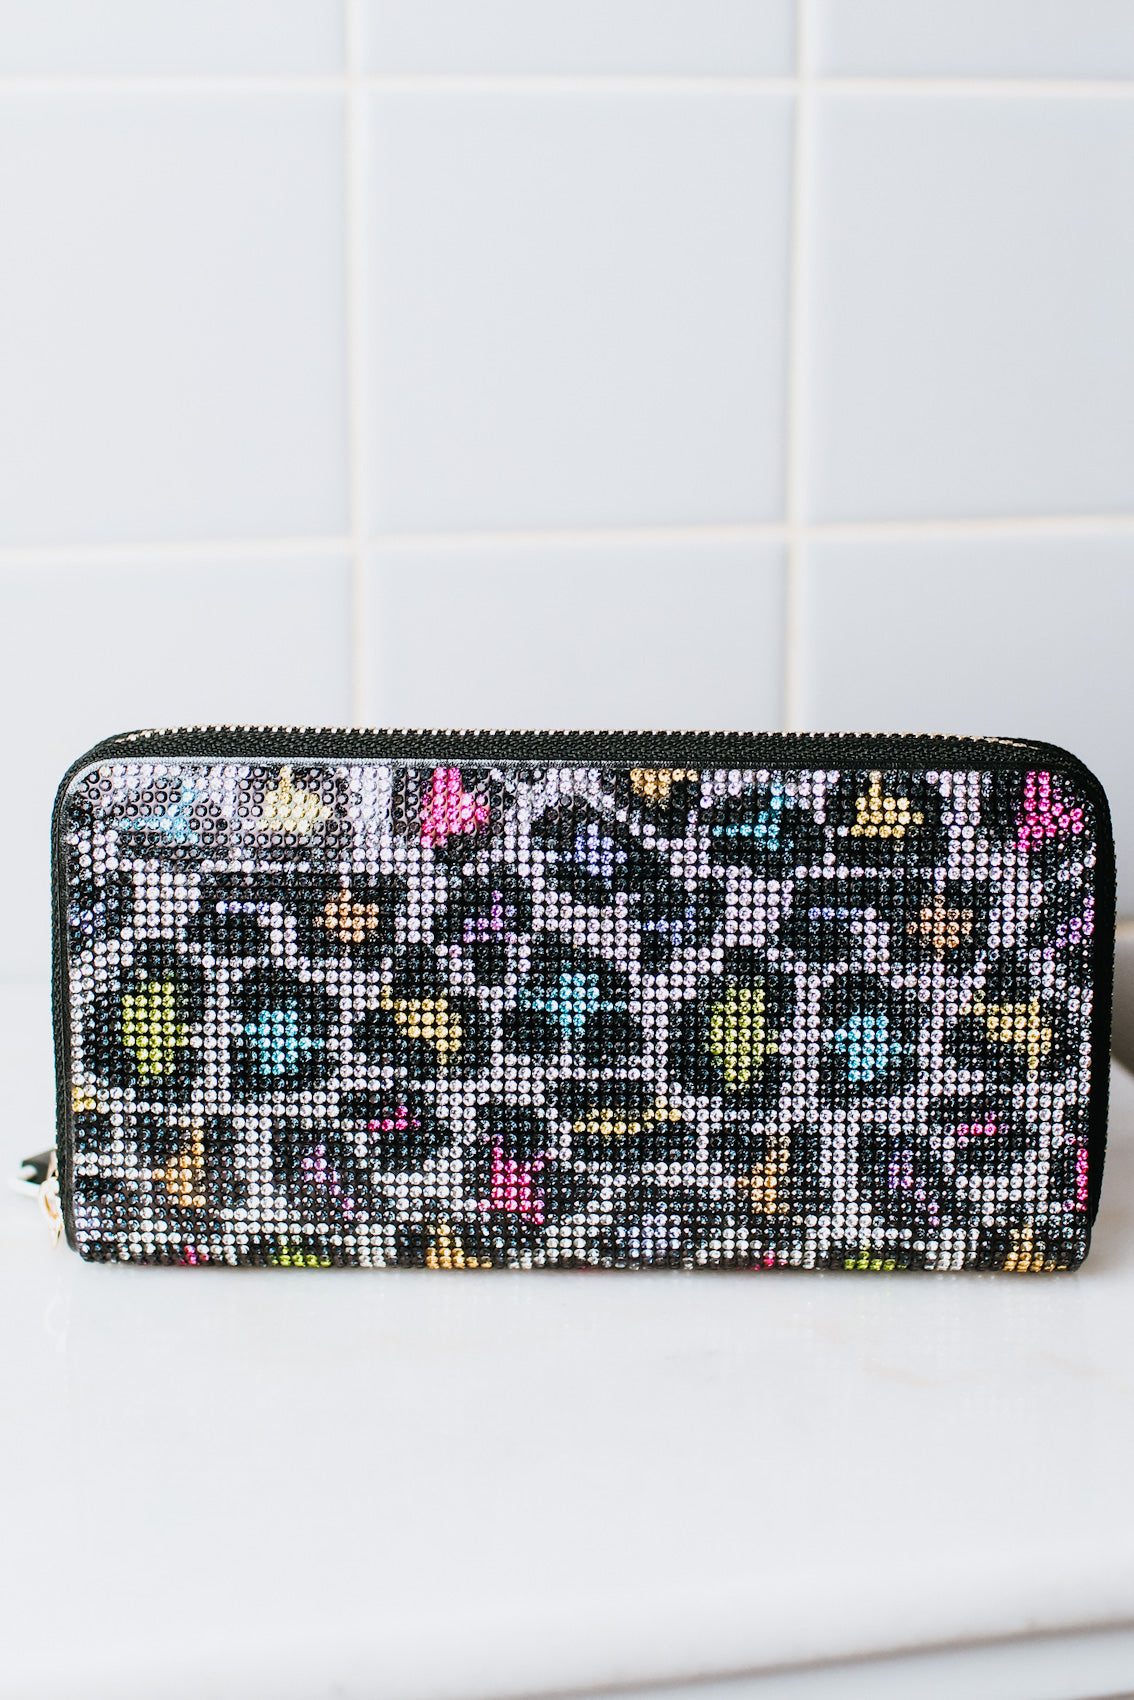 All Rhinestone Leopard Print Wallet